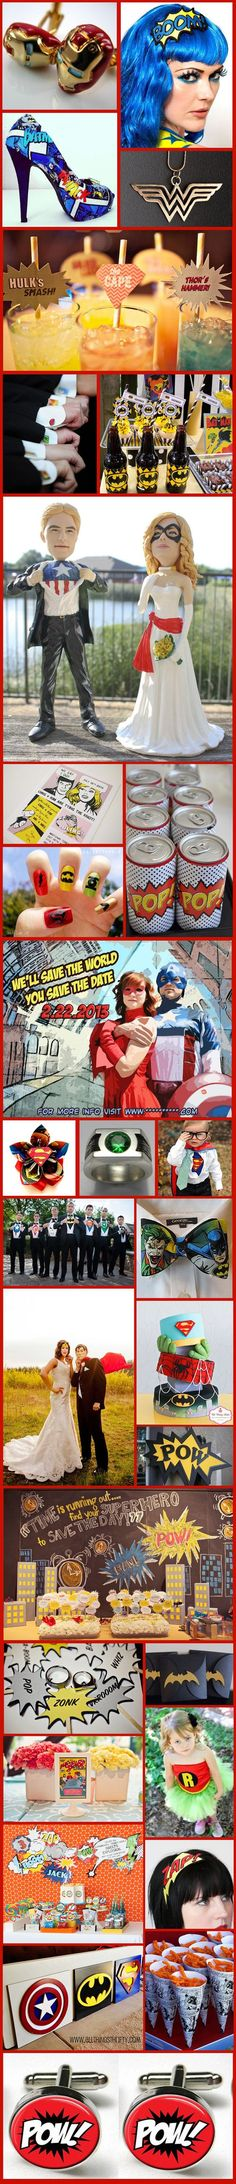 Wednesday Wedding Inspiration: Comic Book Craze. There's no way Tim would agree to this lol.  It's hard being the only geek in the relationship.  I would love to have that Wonder Woman necklace though.: